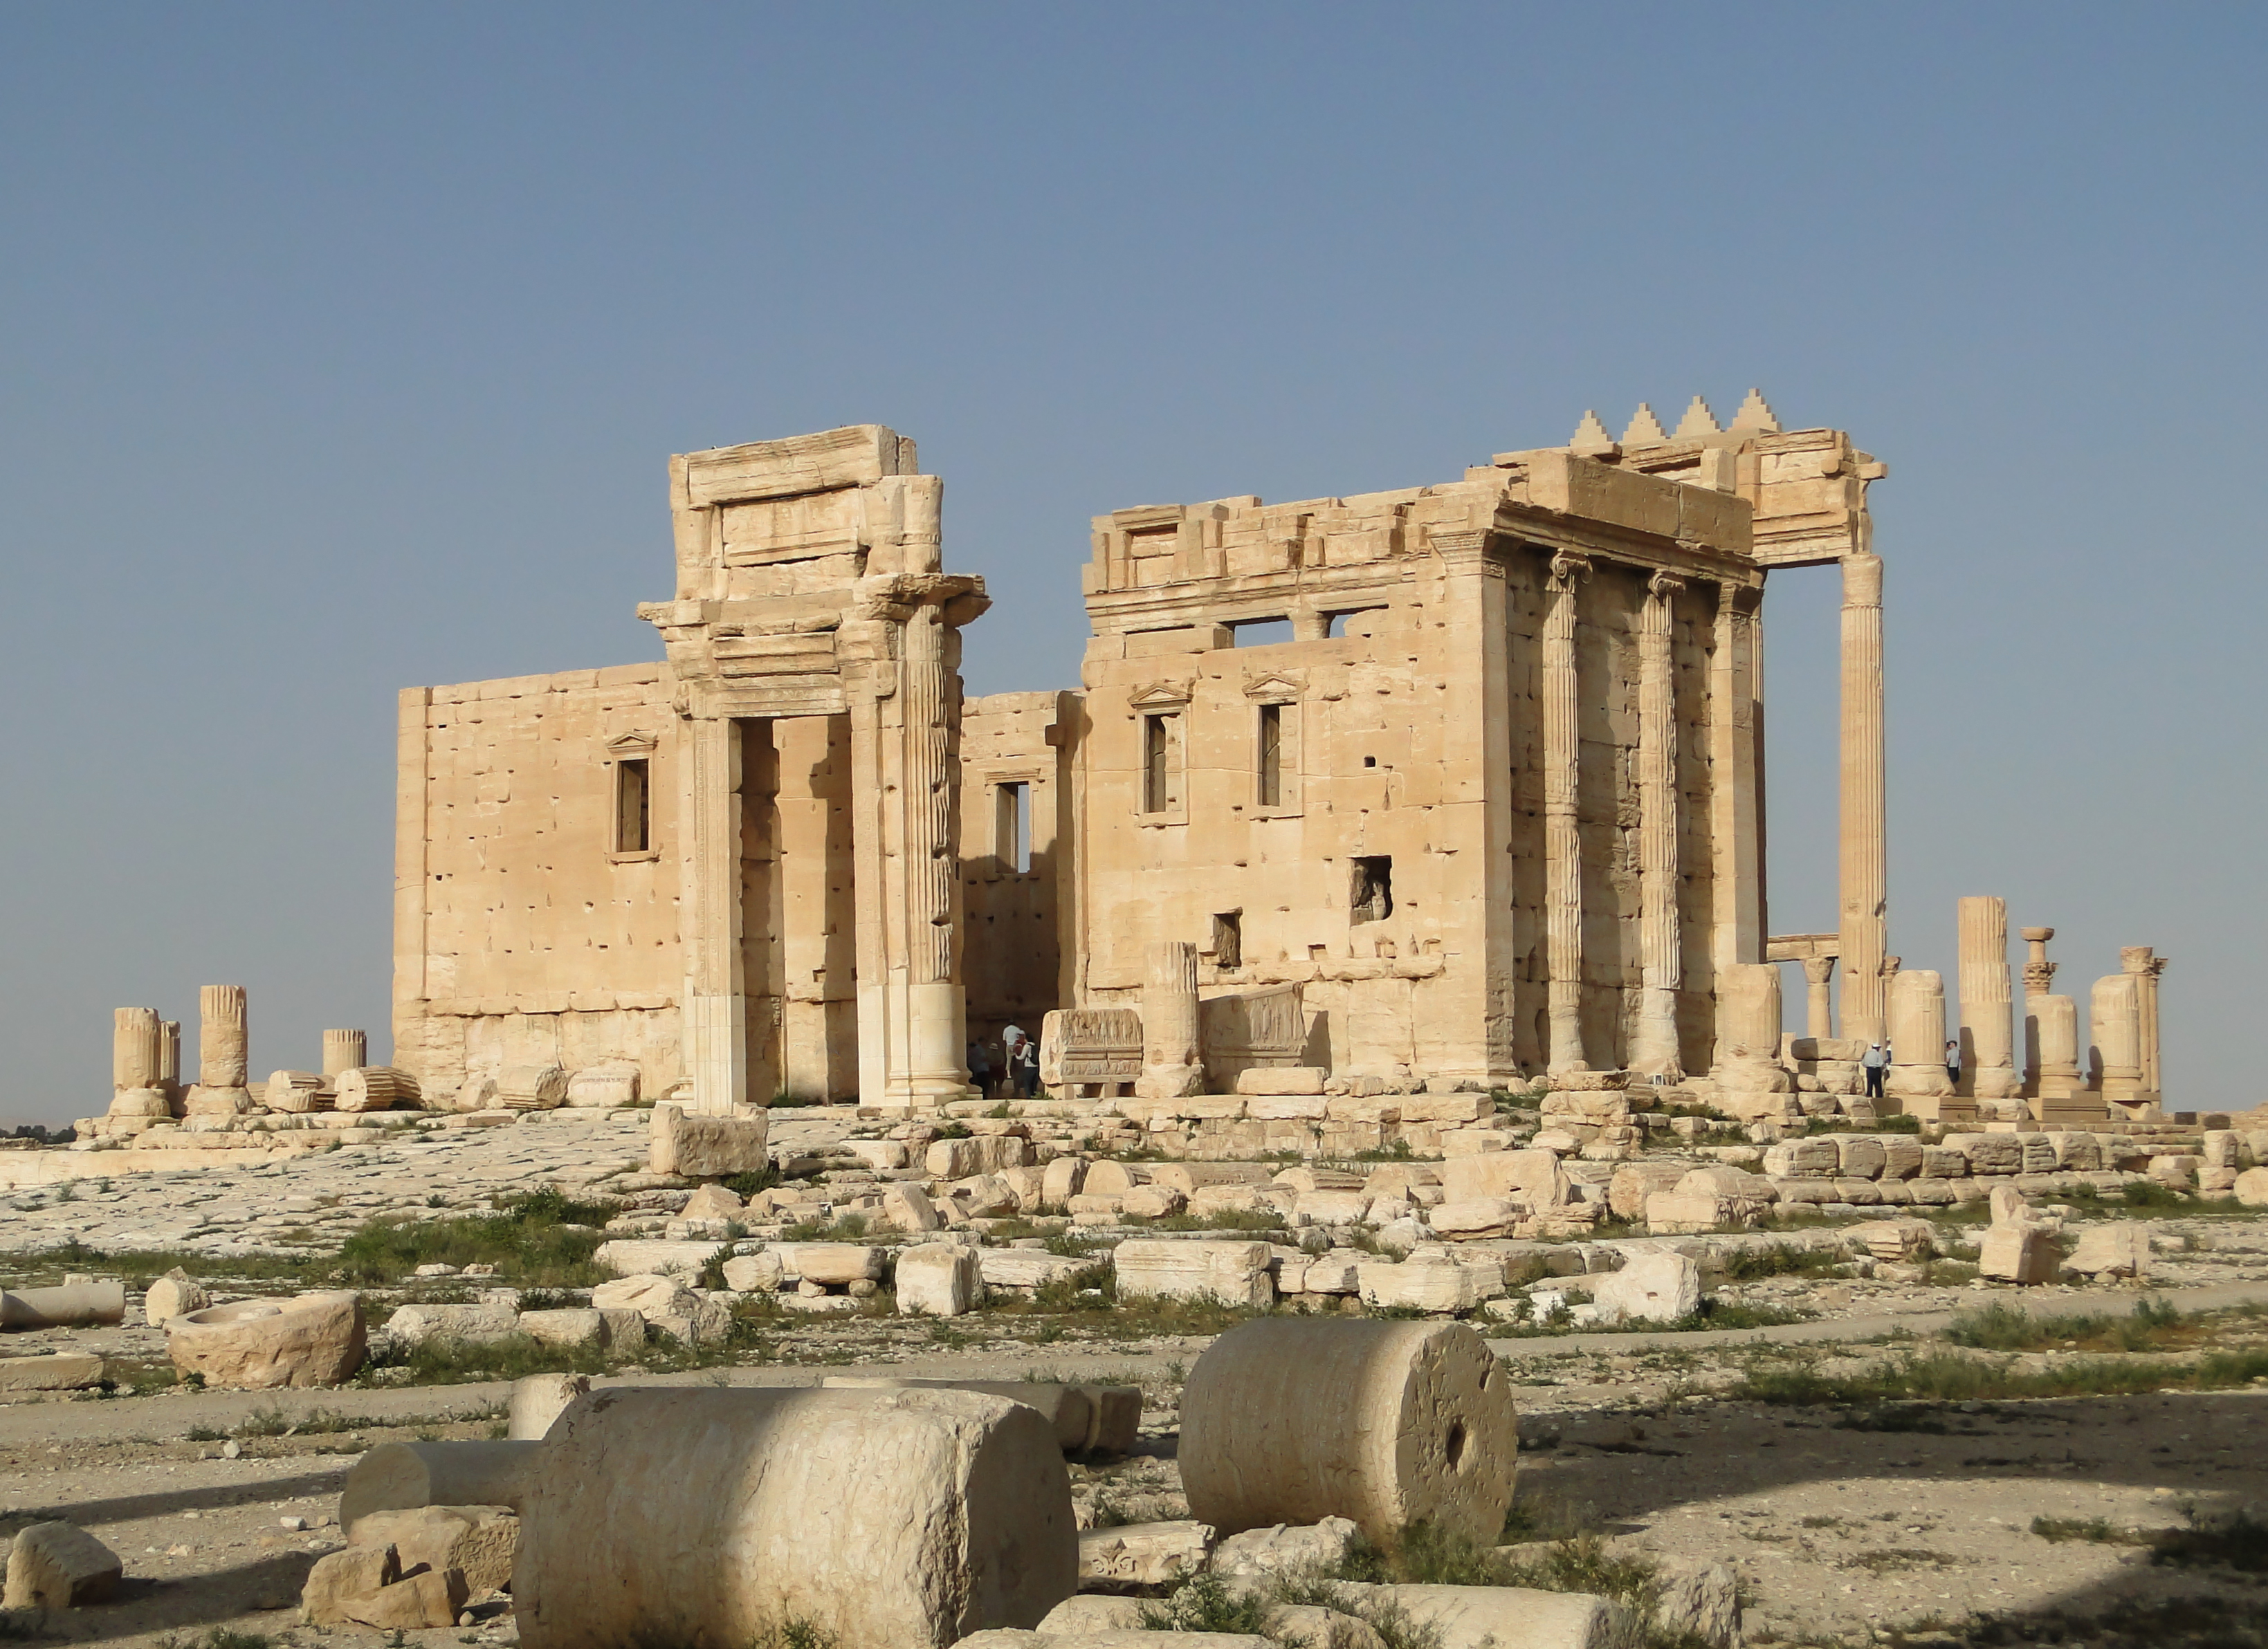 The Temple of Bel in Palmyra, destroyed by ISIS militants in 2015. Image courtesy Wikimedia Commons